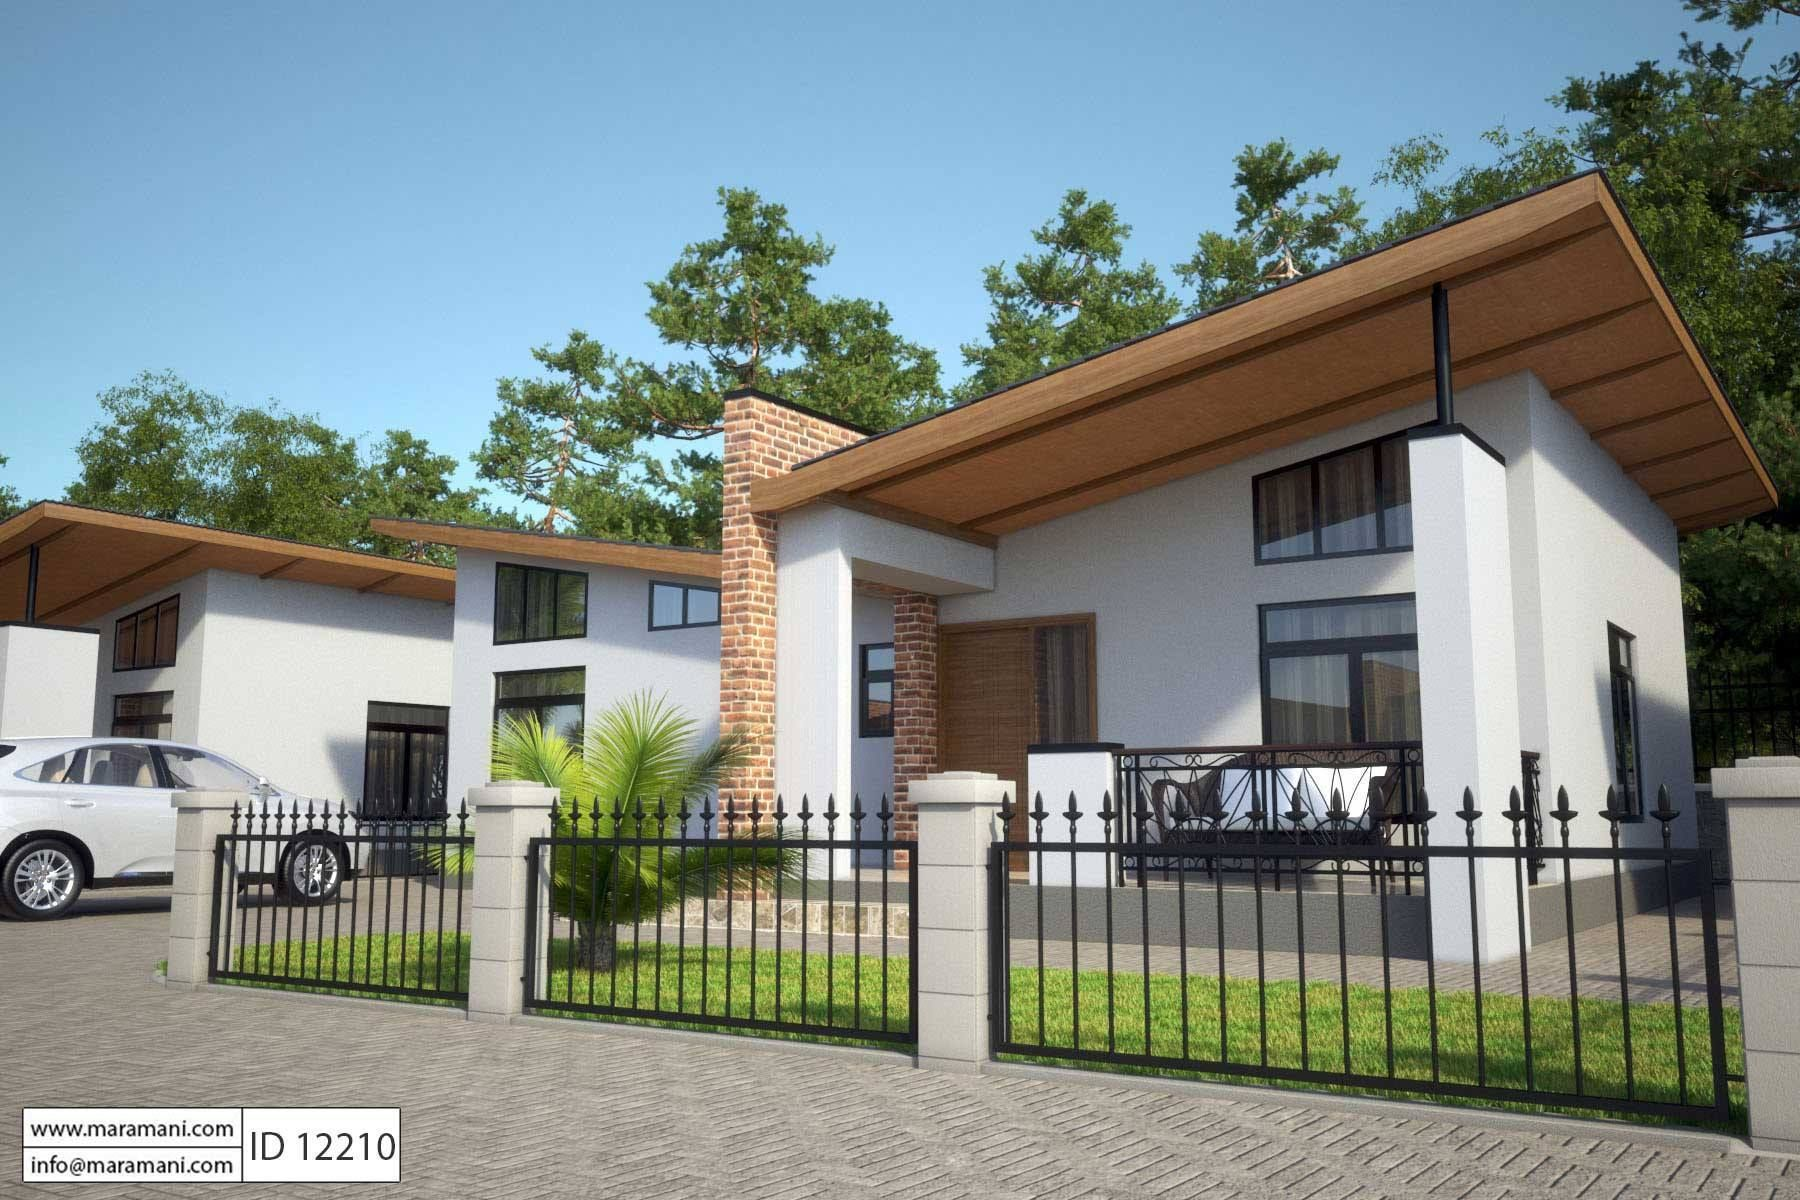 2 Bedroom House Plan Id 12210 House Designs By Maramani 2